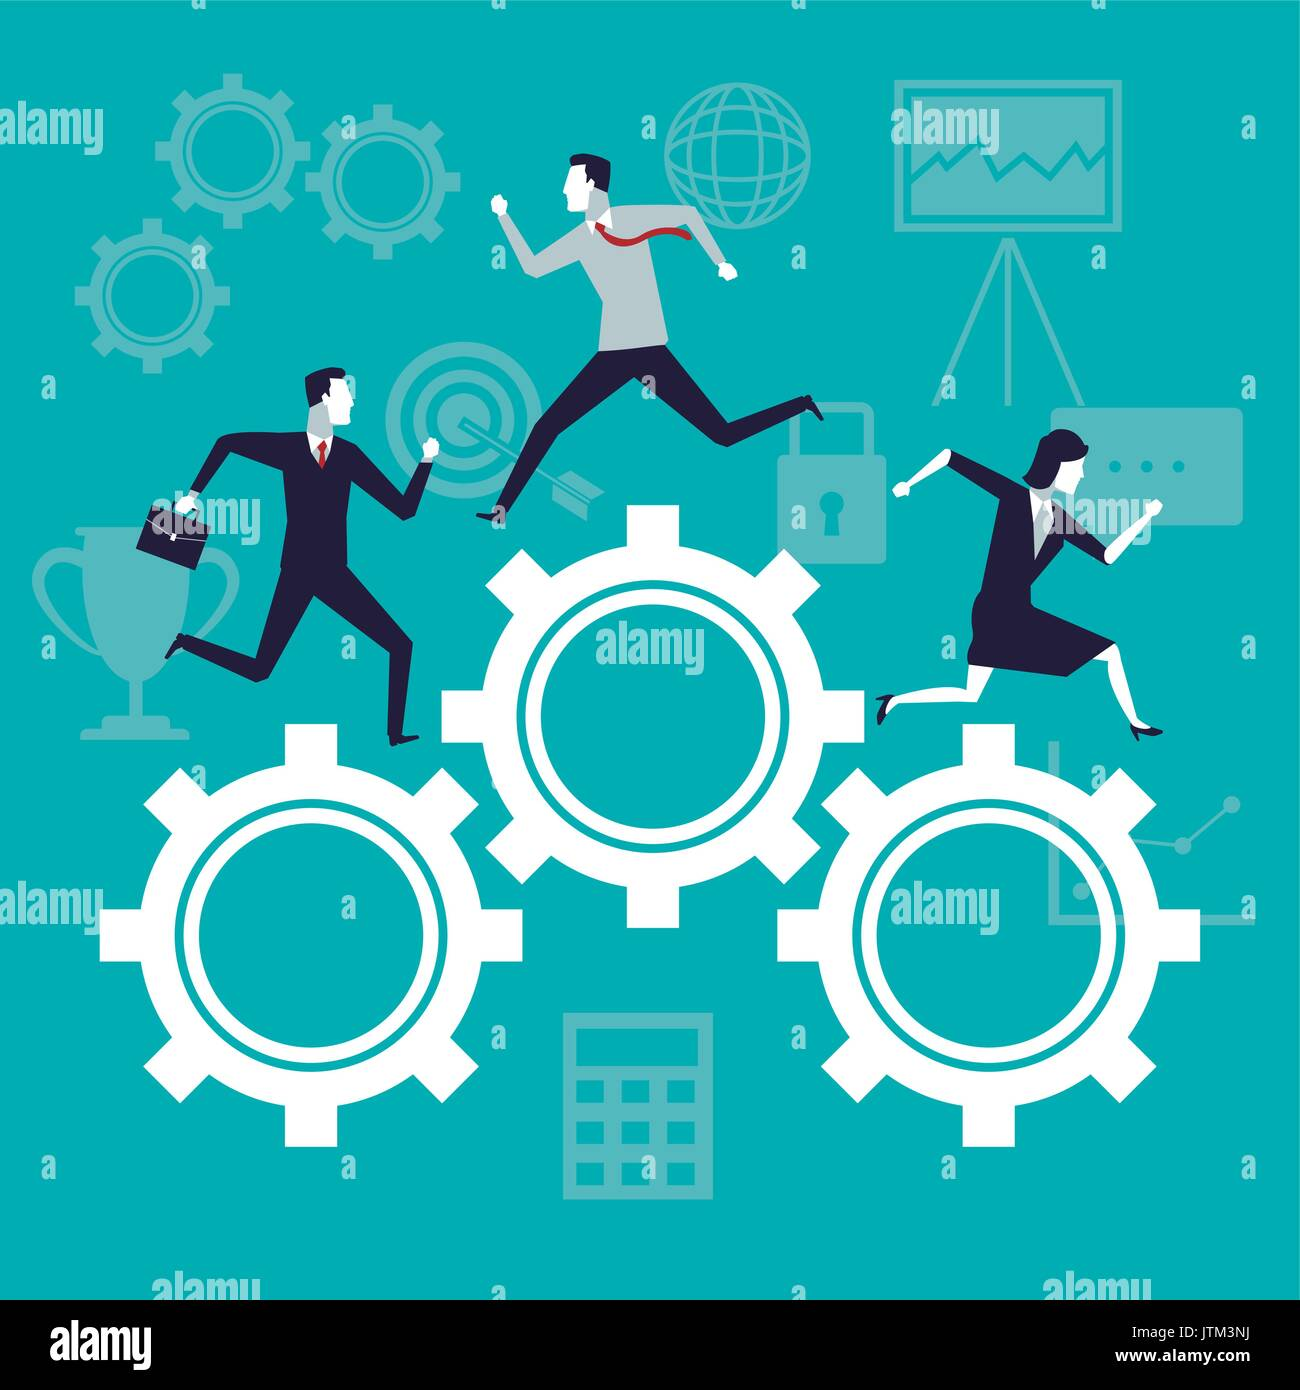 color background business growth with business people running in mechanism gears - Stock Image